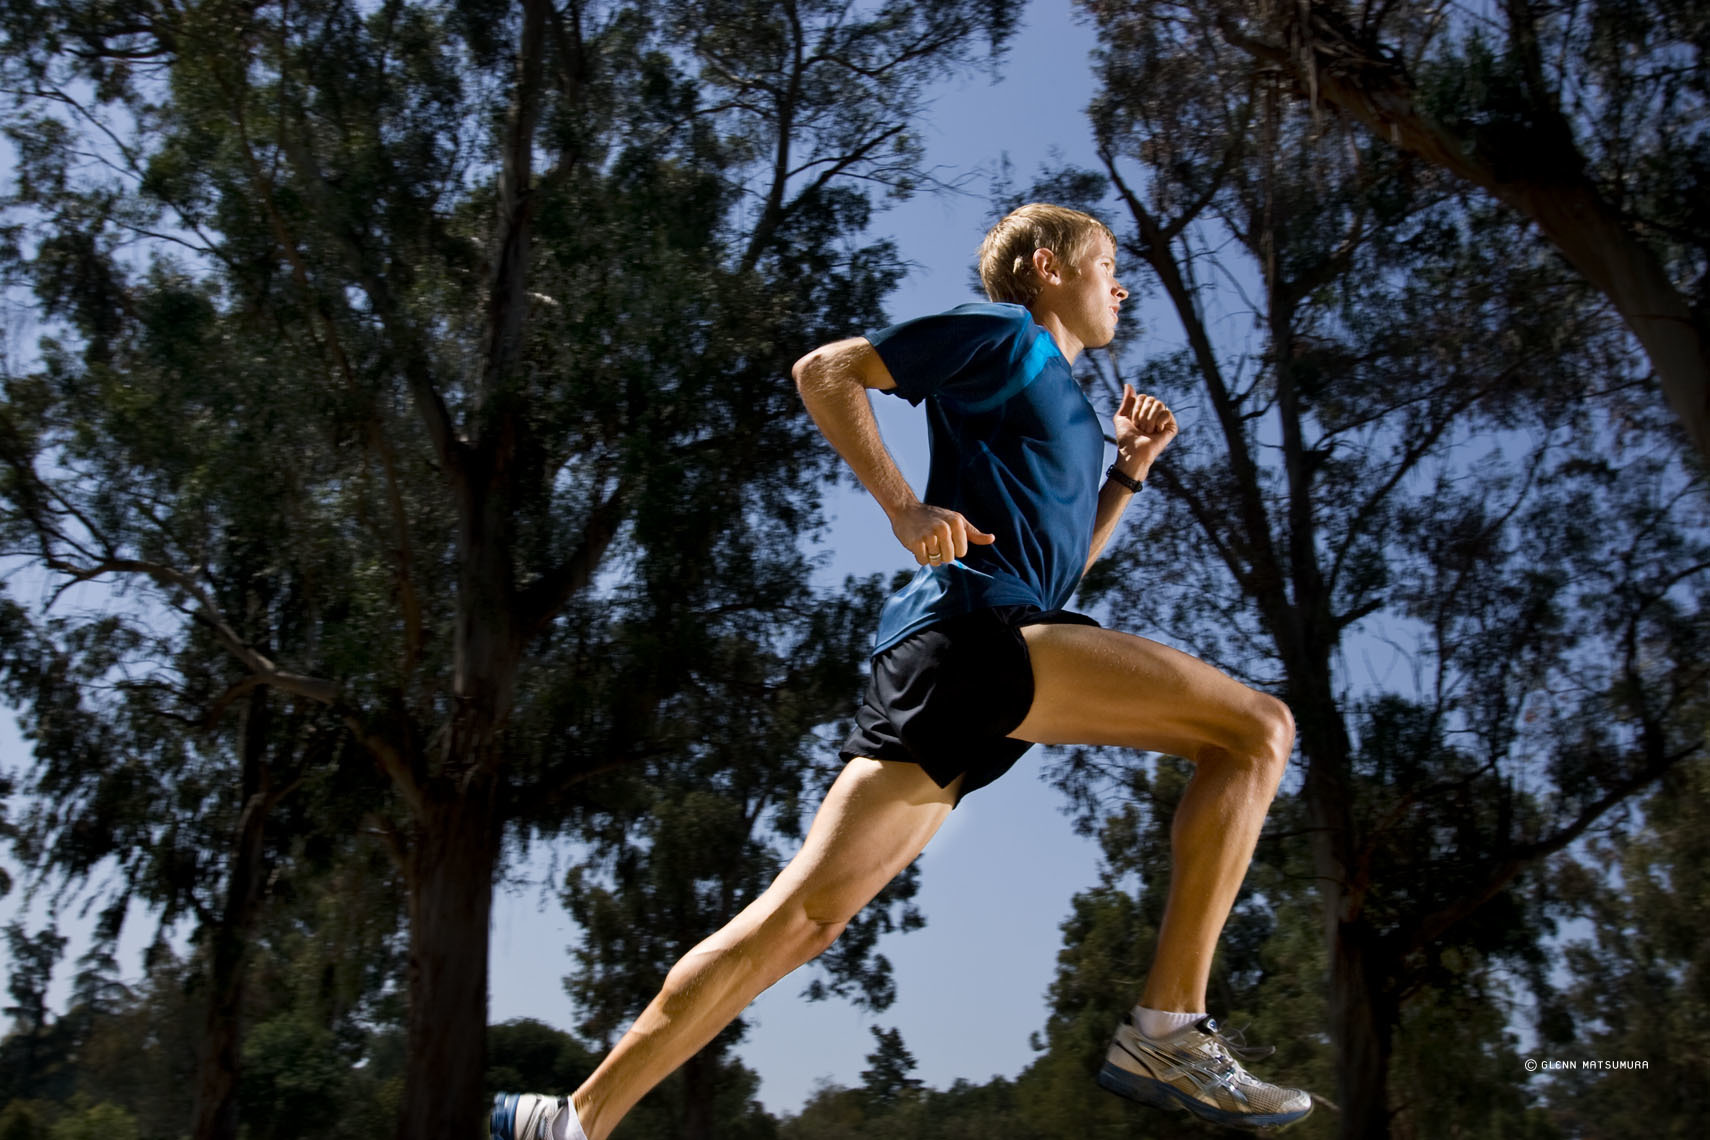 Stanford marathon runner, Ryan Hall at the eucalyptus grove on t